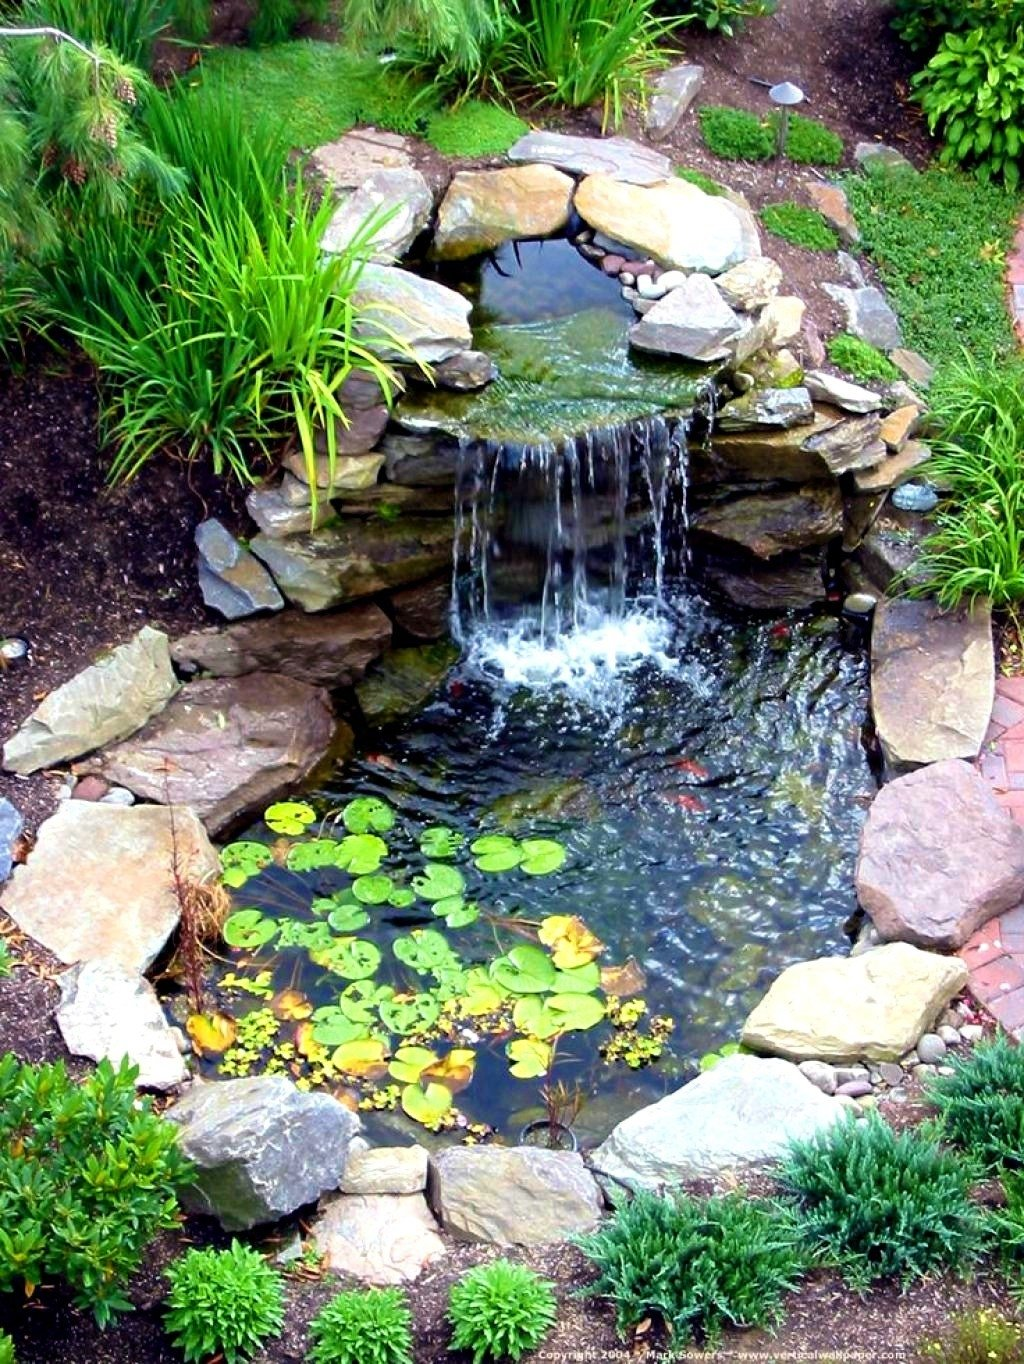 10 Perfect Water Feature Ideas For Small Gardens best water features for small gardens water fountains ideas 2020